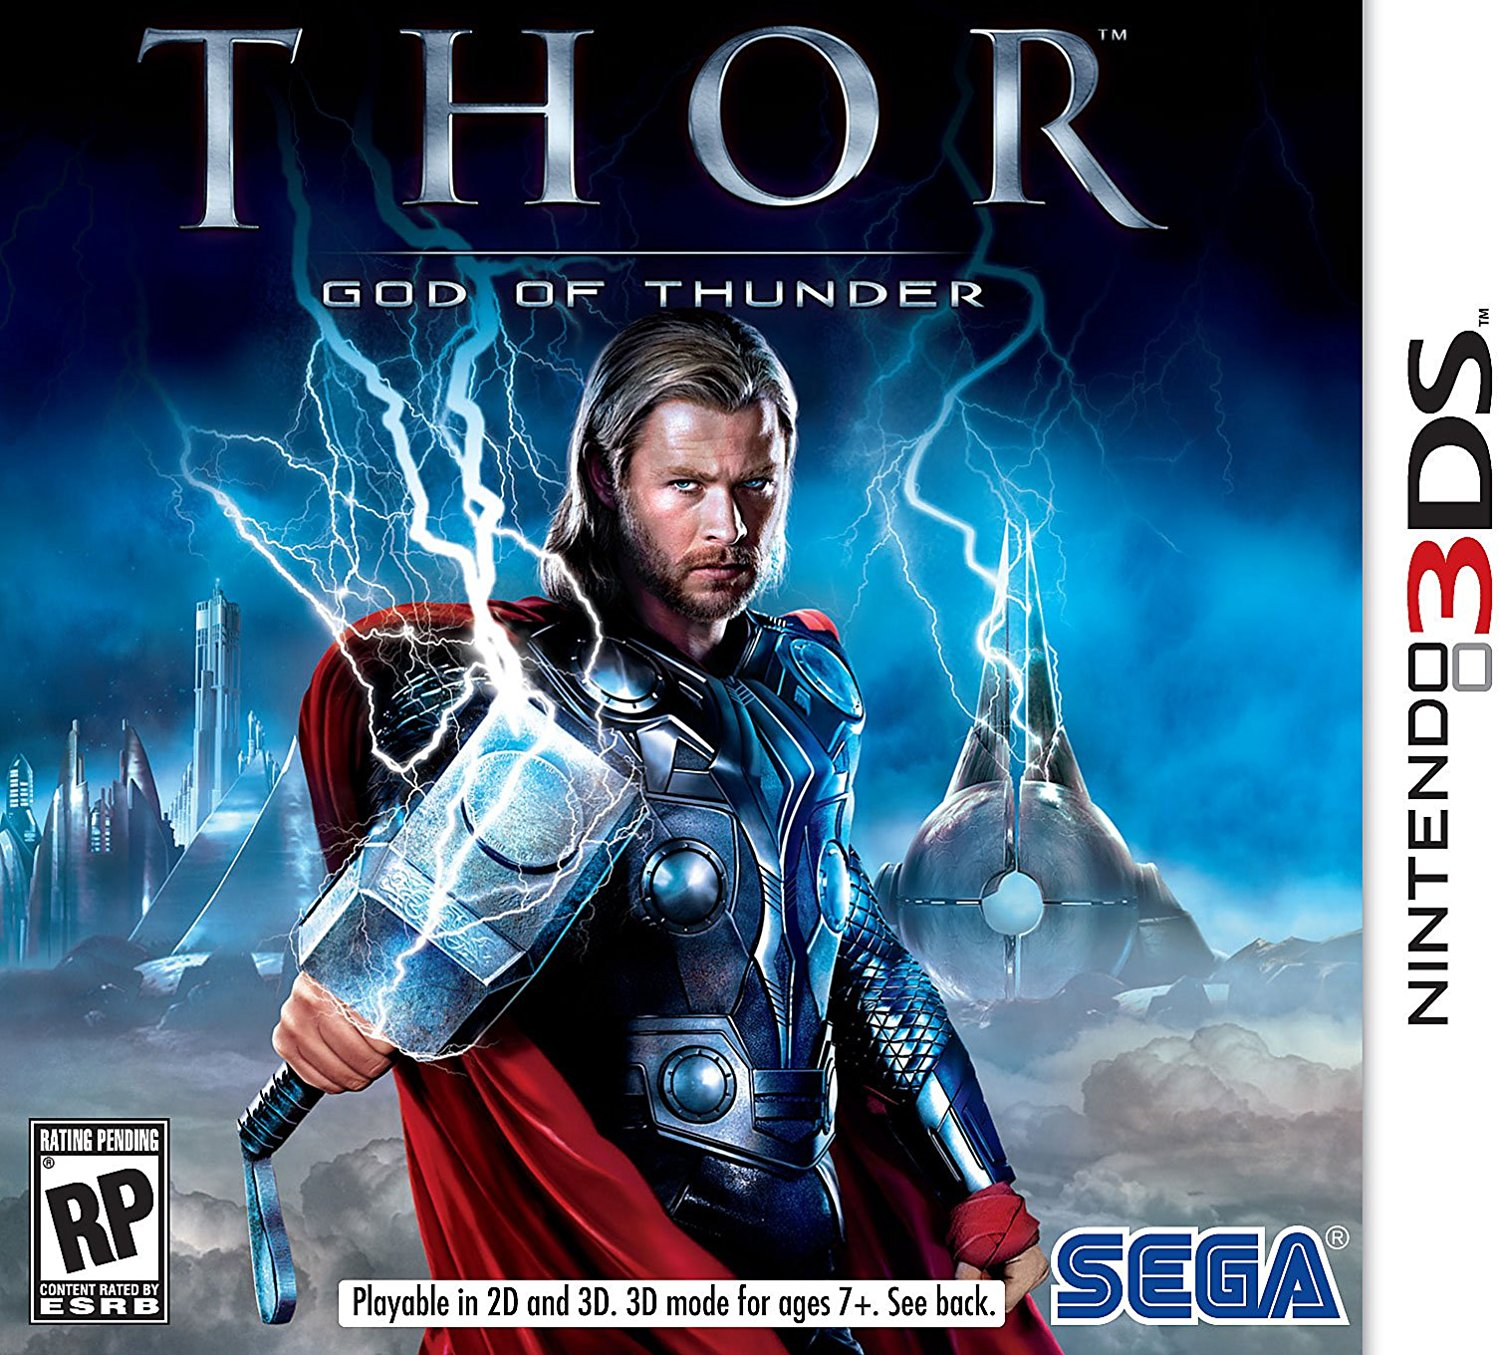 Thor: God of Thunder Nintendo 3DS, Save the Norse worlds from 12-ton, 25-foot-tall frost giants and trolls in... by